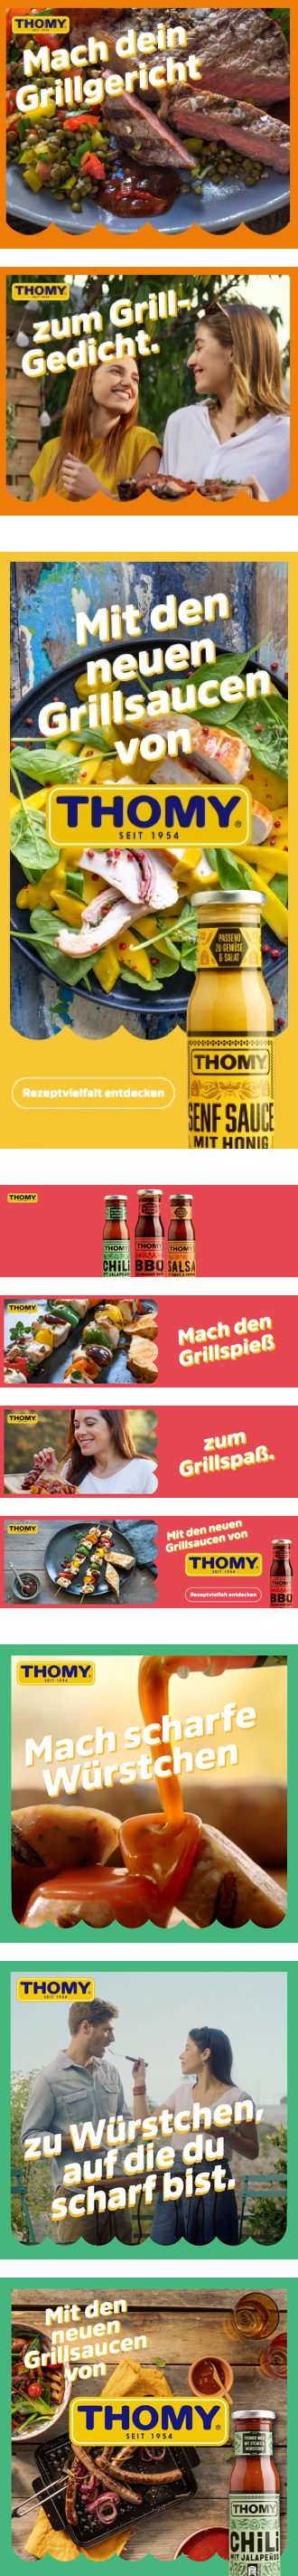 Group of teaser images about THOMY sauces